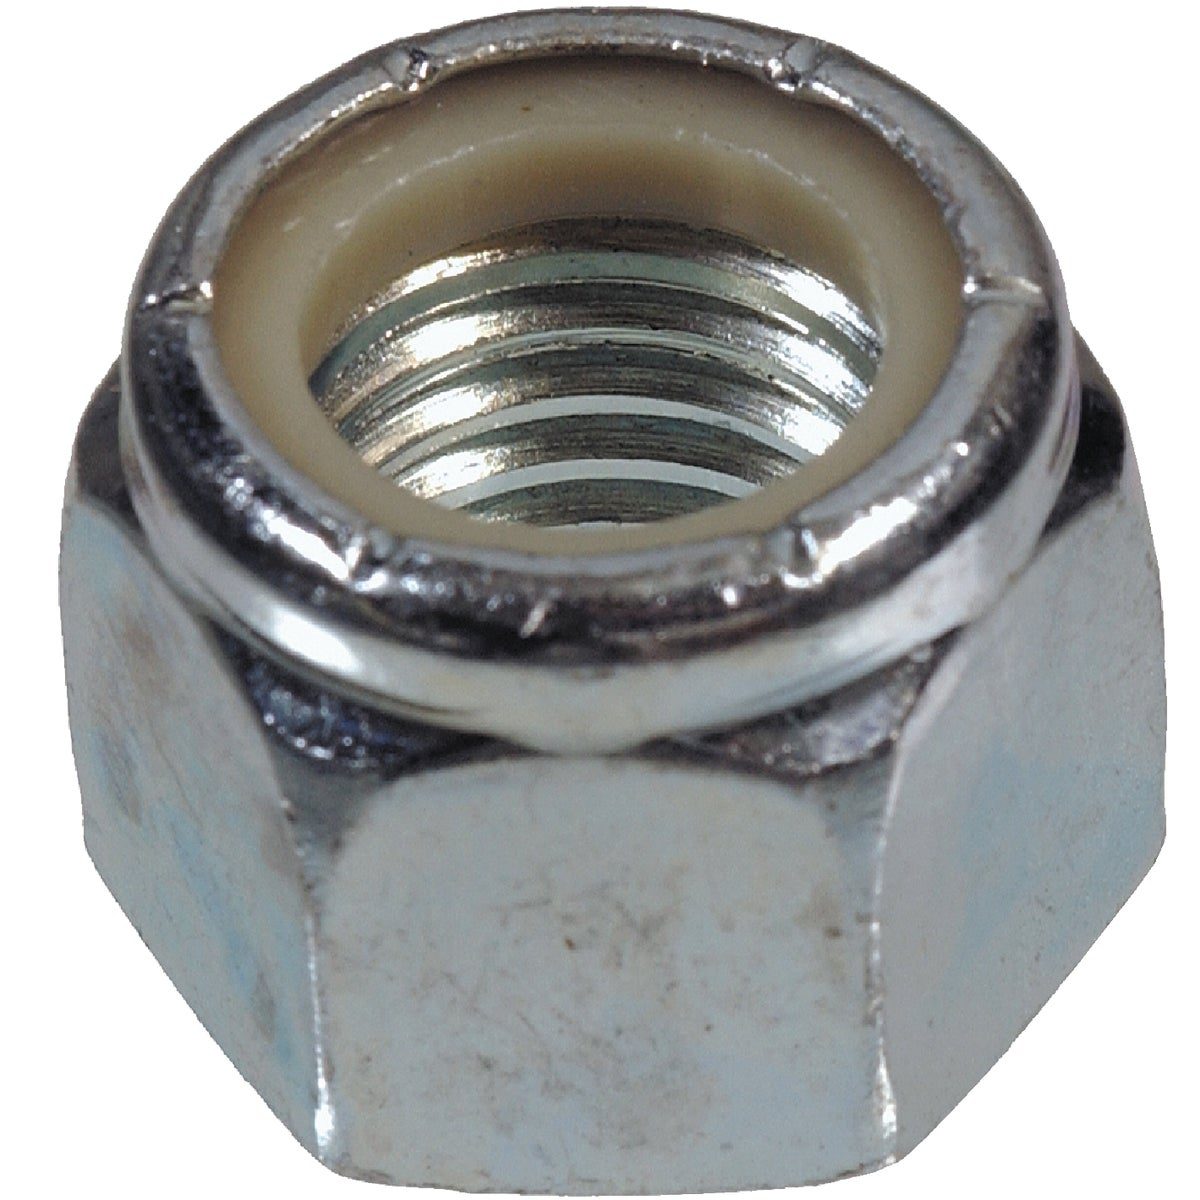 7/16-14 NYLON LOCK NUT - 180156 by Hillman Fastener